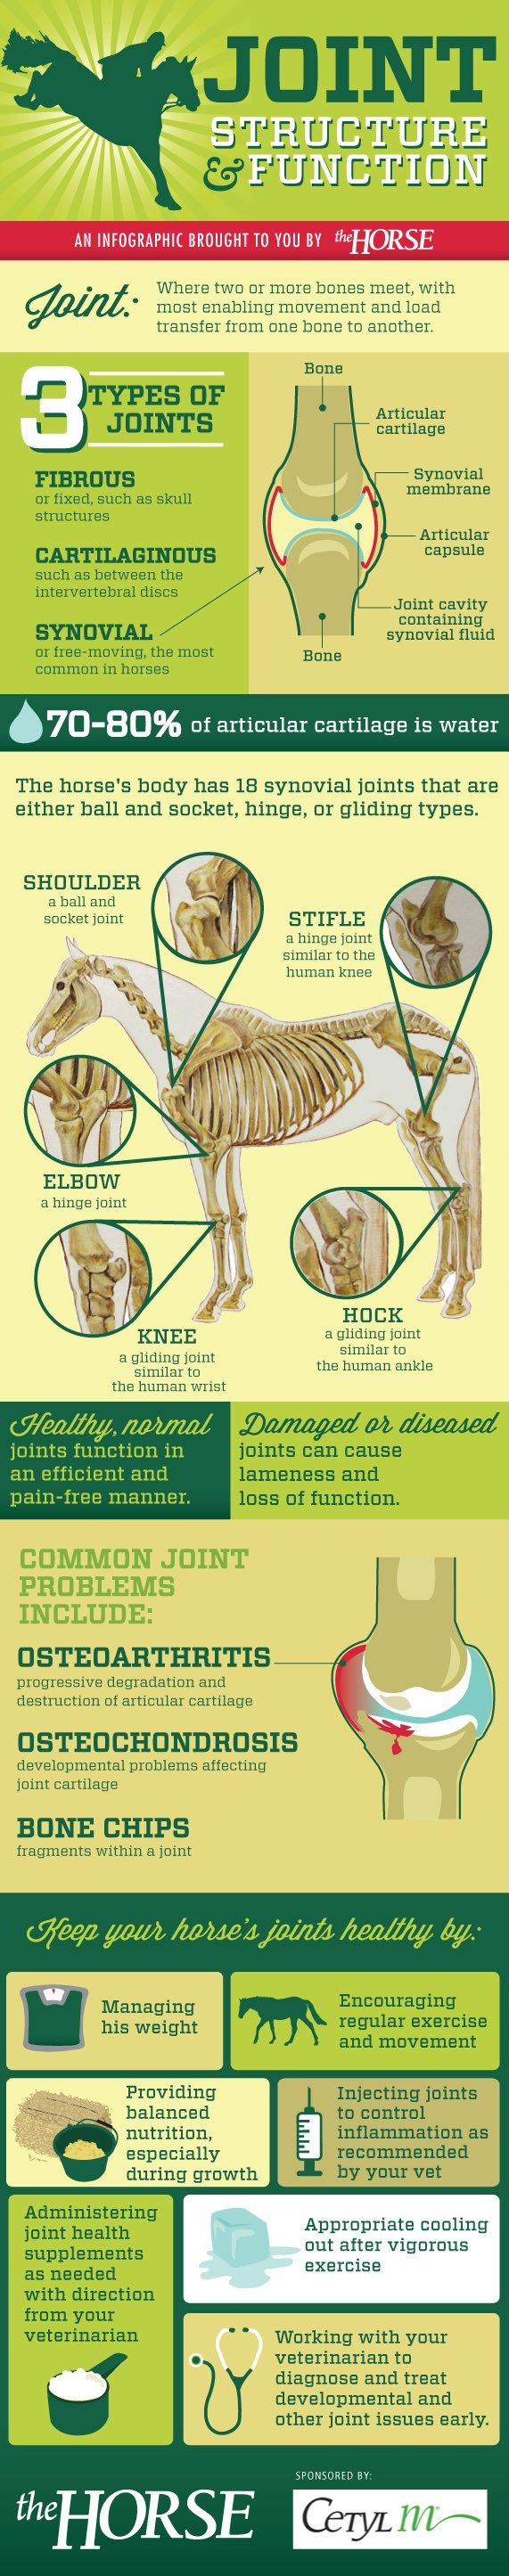 Equine Joint Structure and Function - Learn how equine joints work and common joint-function problems in this step-by-step visual guide.